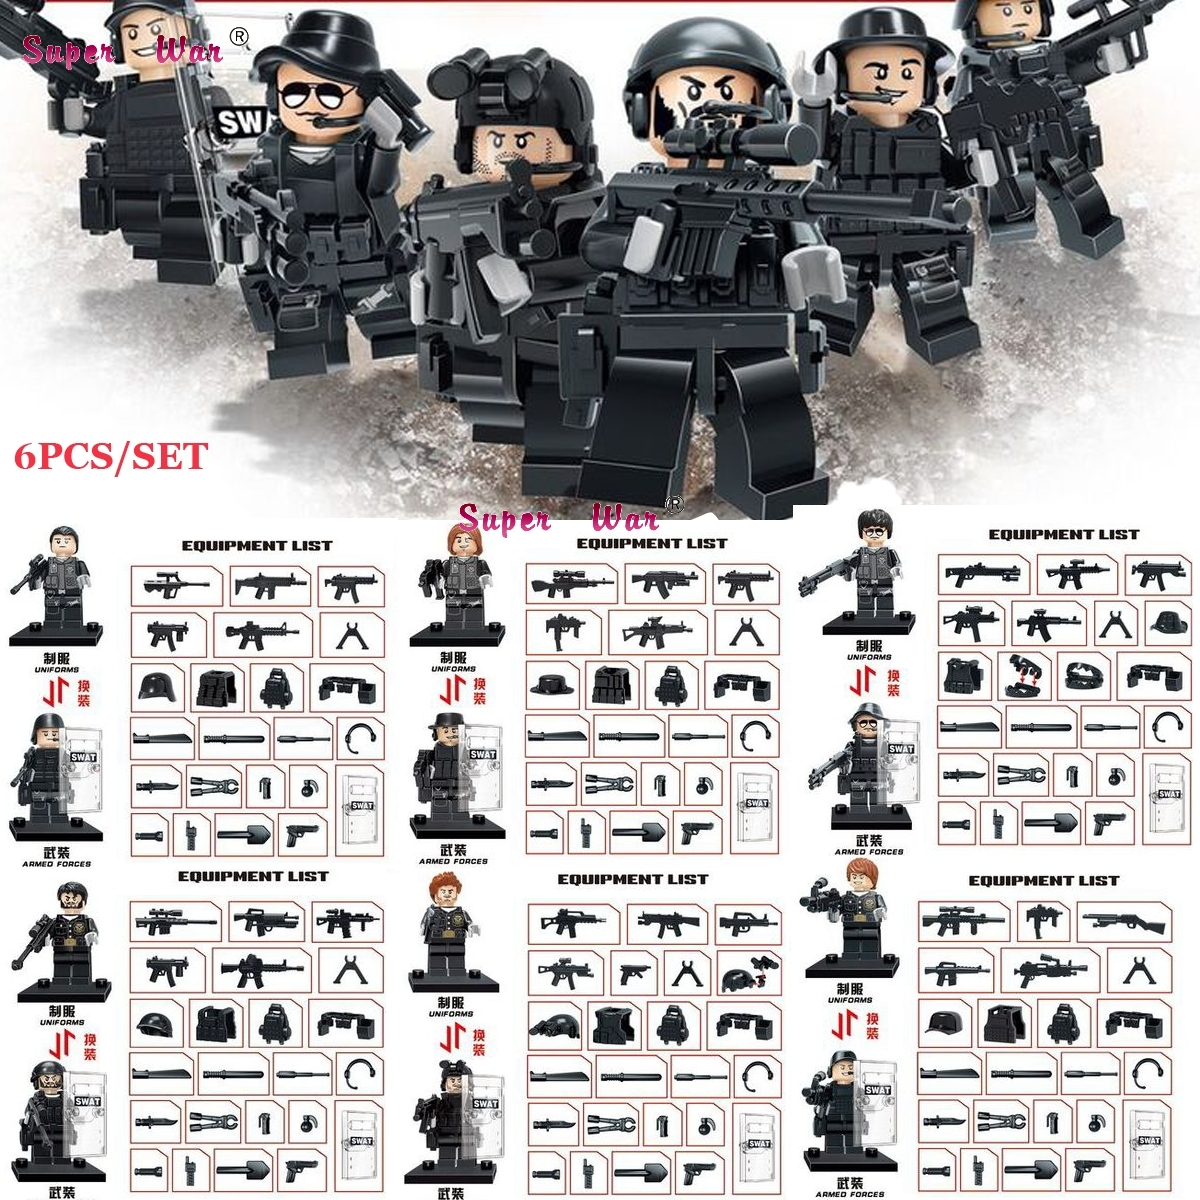 6PCS WW2 Anti Military policeman City Police Army Soldier weapon building blocks action  bricks toys for children xinlexin 317p 4in1 military boys blocks soldier war weapon cannon dog bricks building blocks sets swat classic toys for children